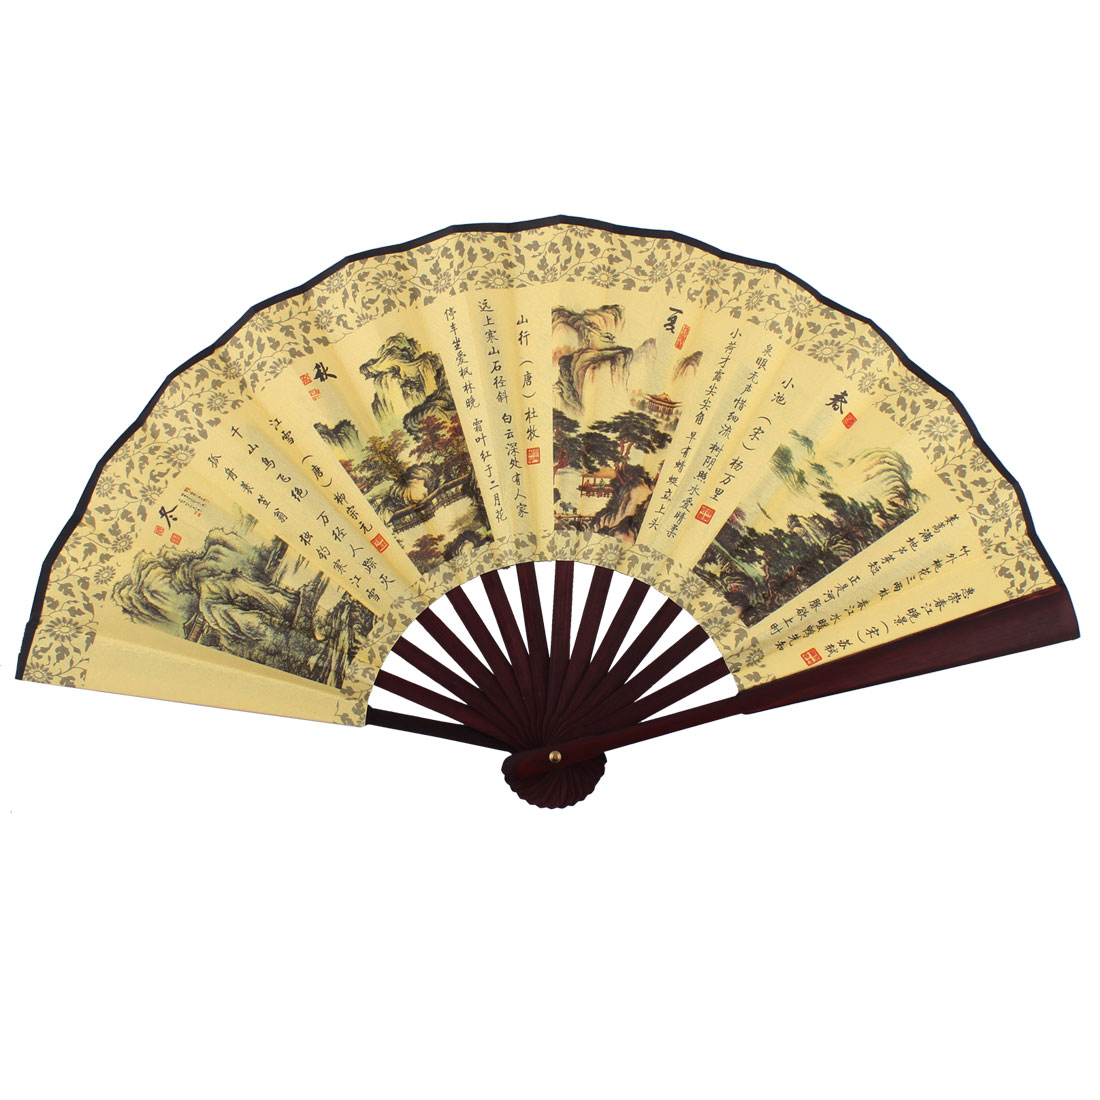 Wooden Frame Four Seasons Pattern Chinese Retro Style Folding Handheld Fan Yellow